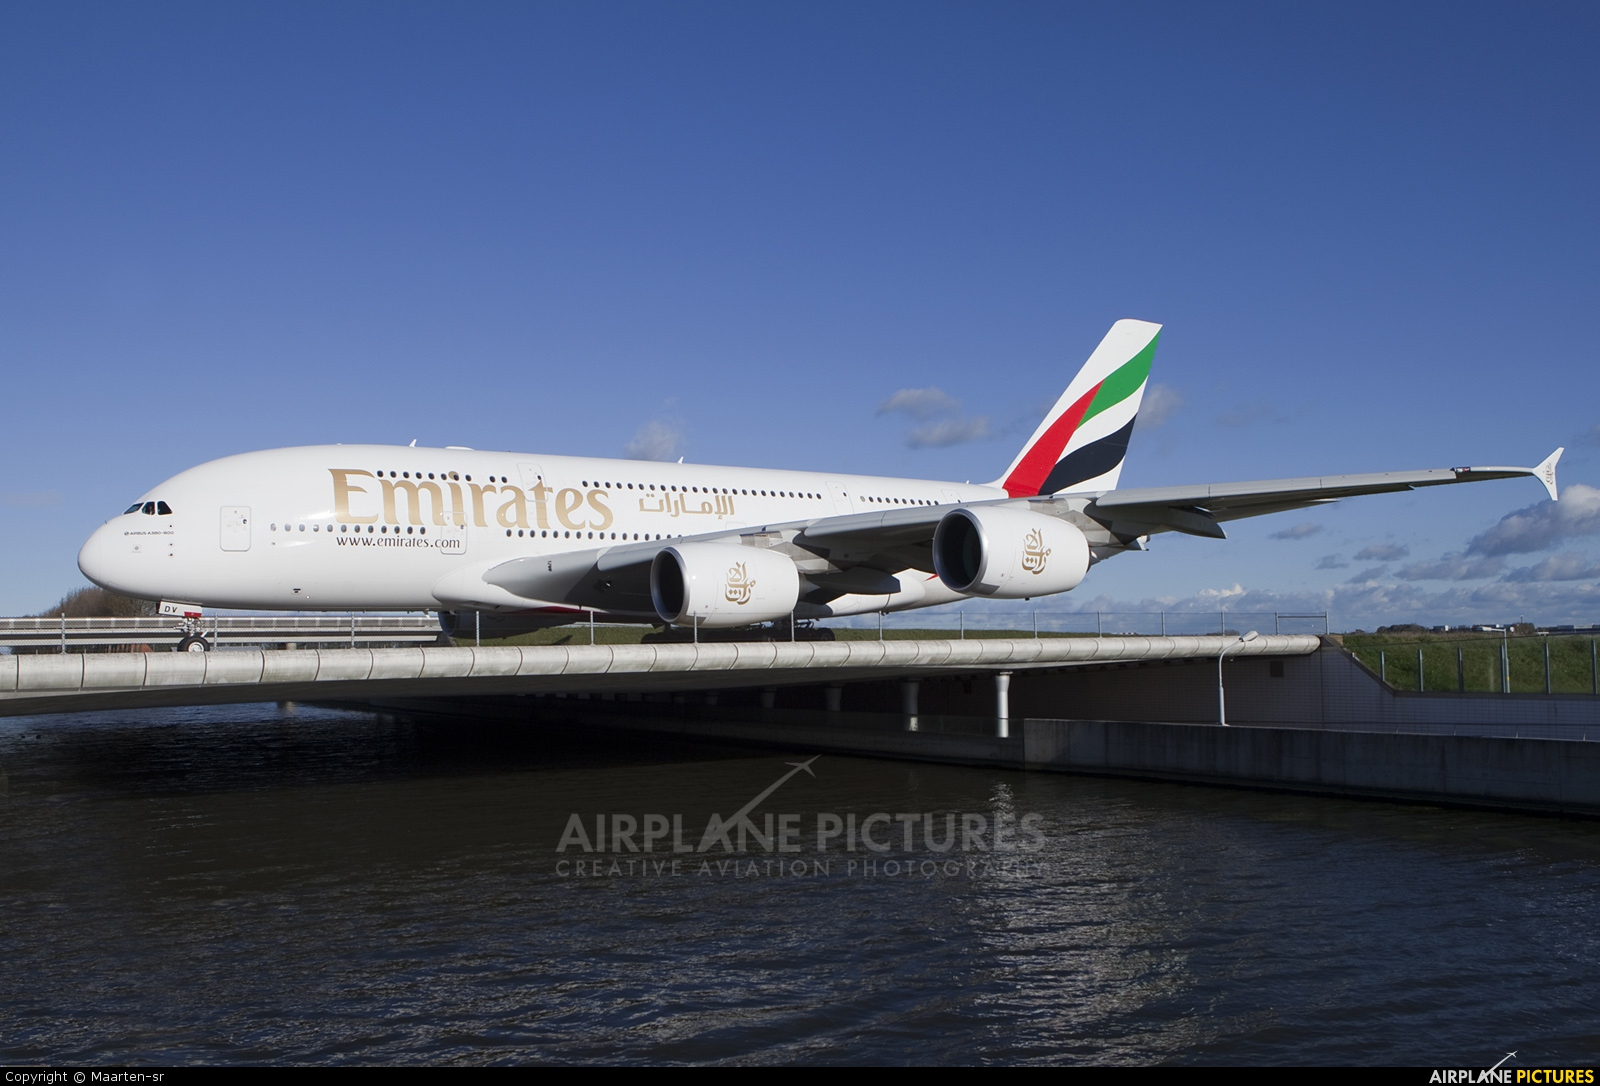 Emirates Airlines A6-EDV aircraft at Amsterdam - Schiphol